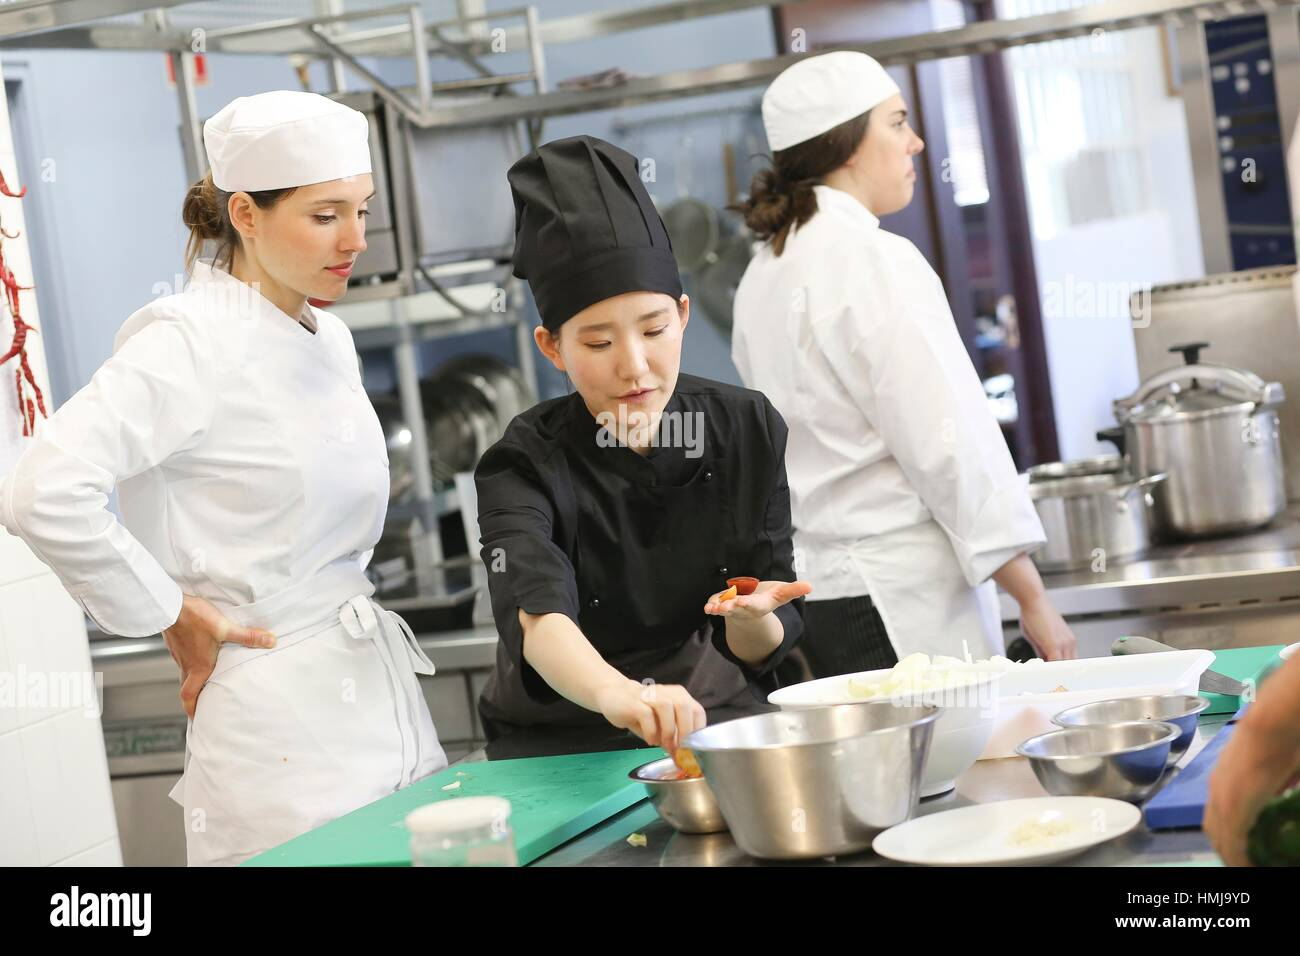 Restaurant Kitchen Chefs